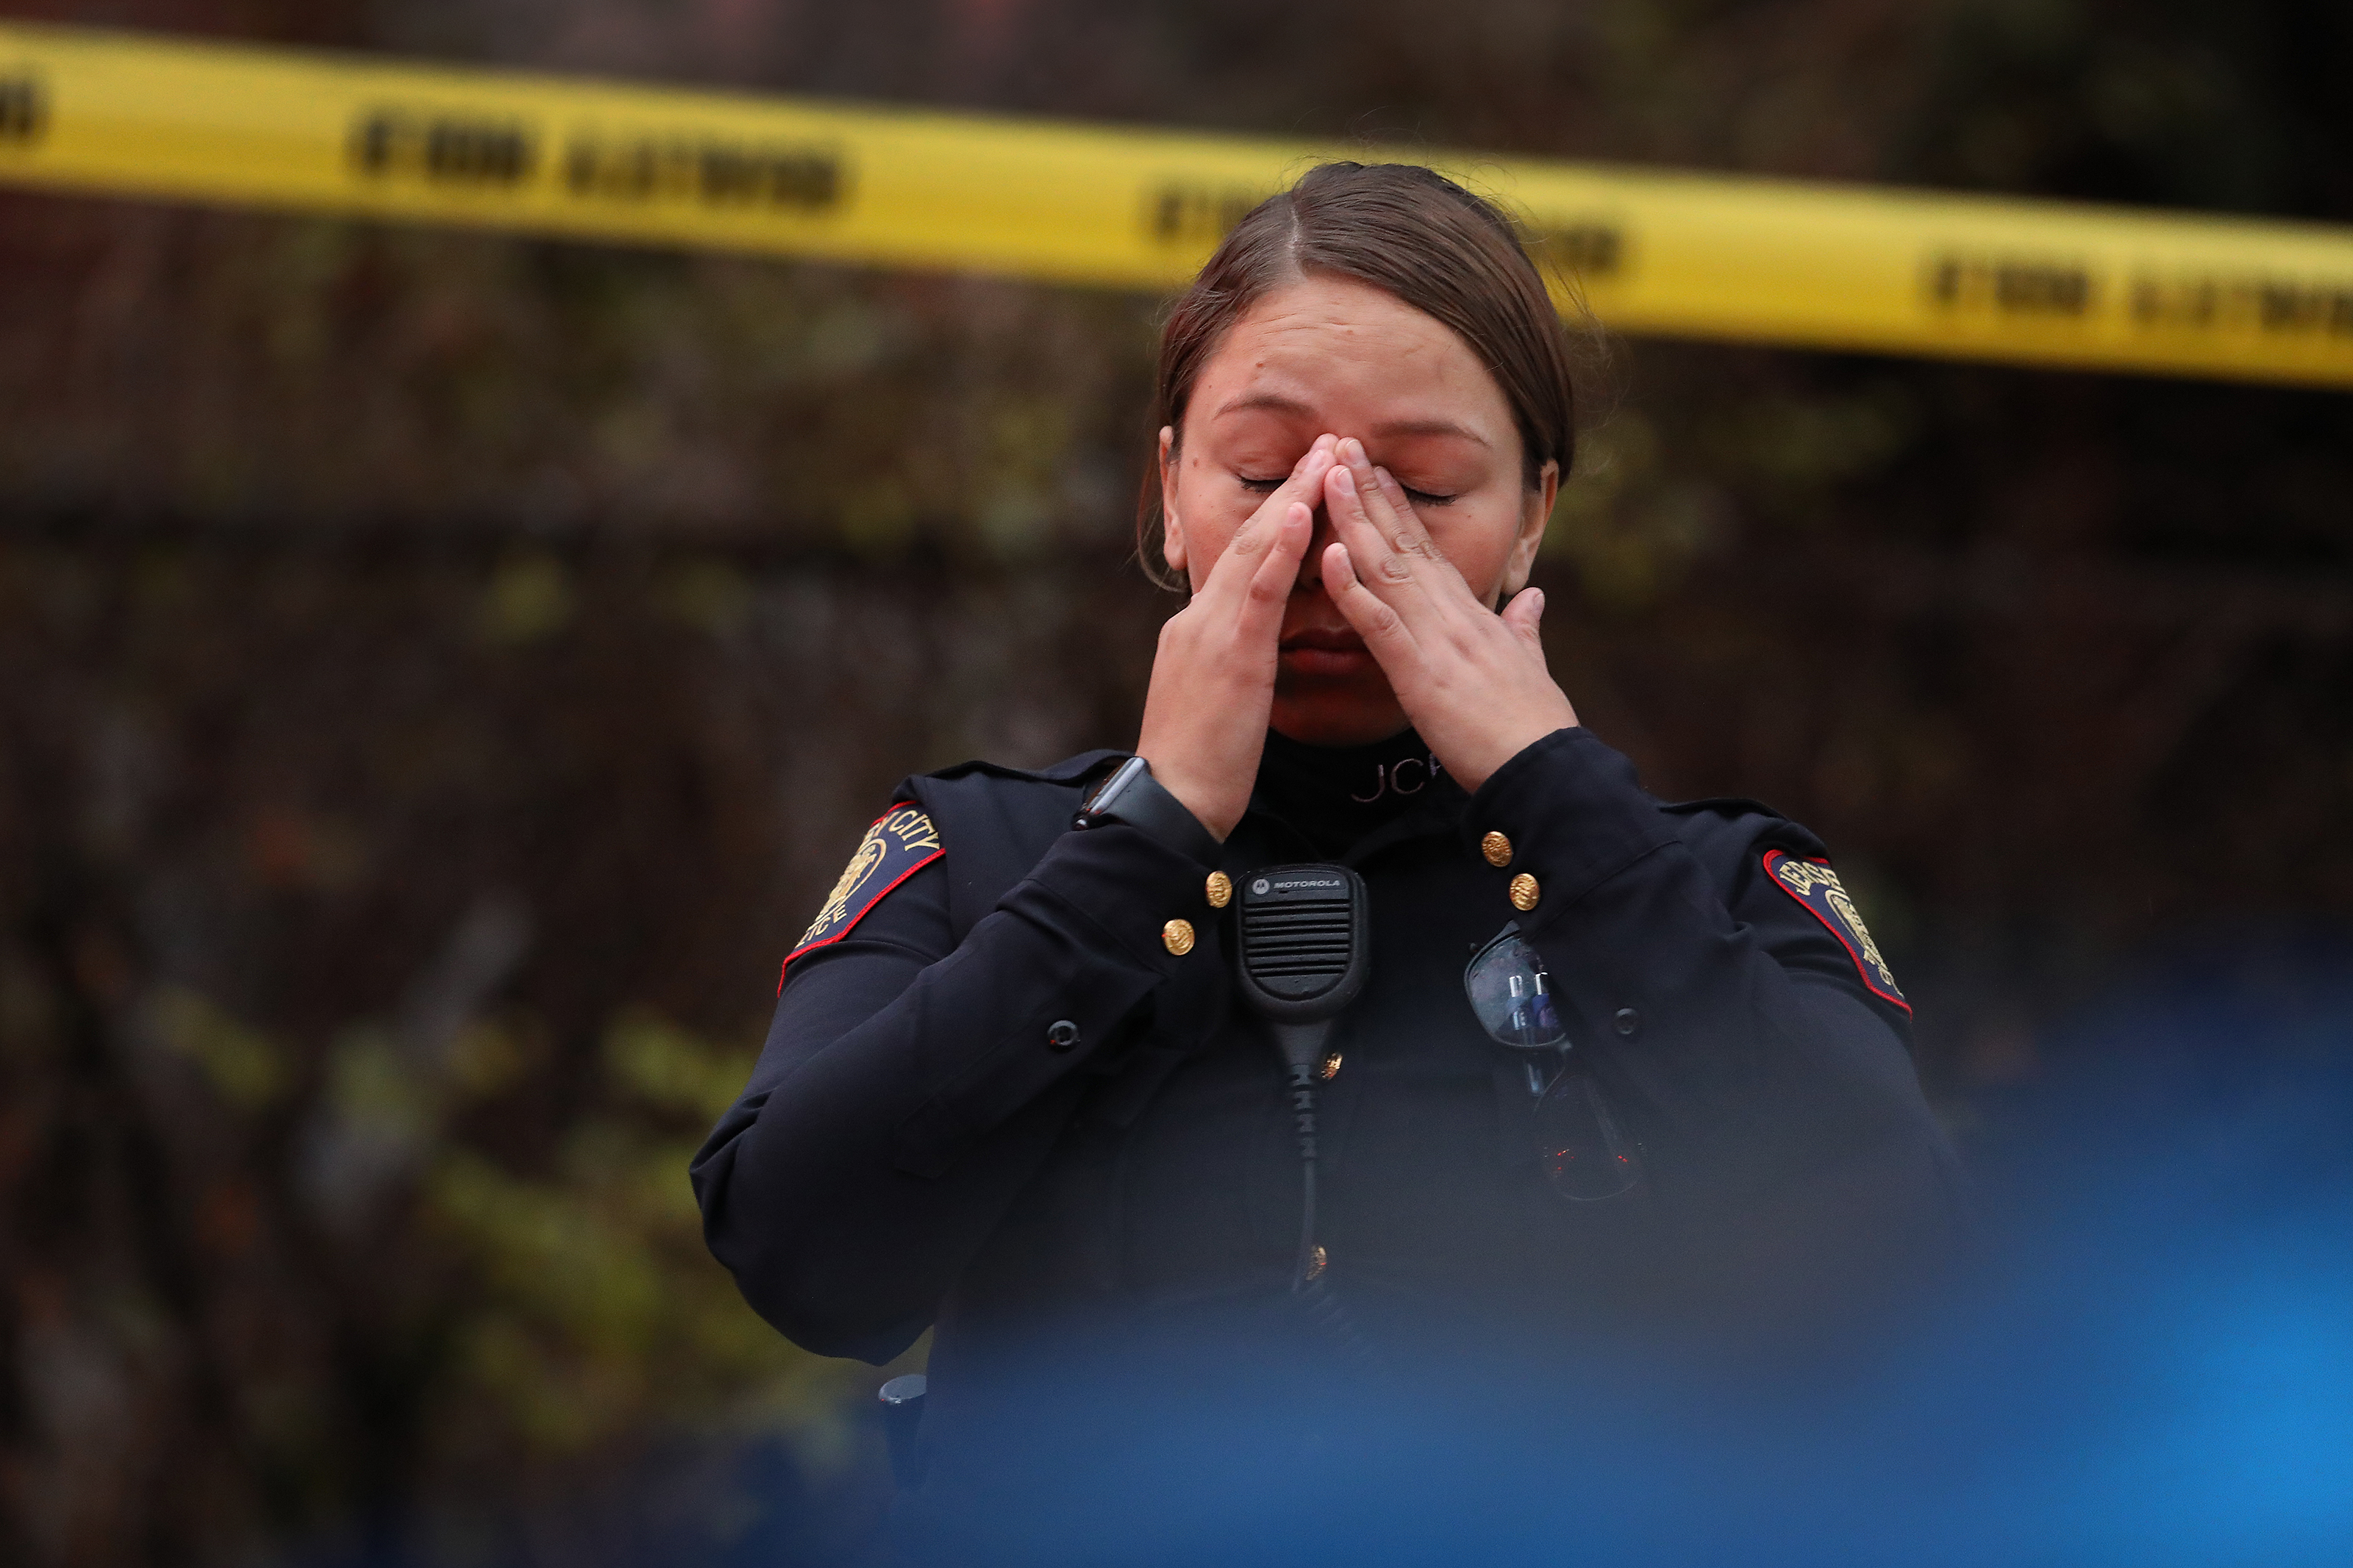 A Jersey City police officer reacts at the scene of a shooting in New Jersey.